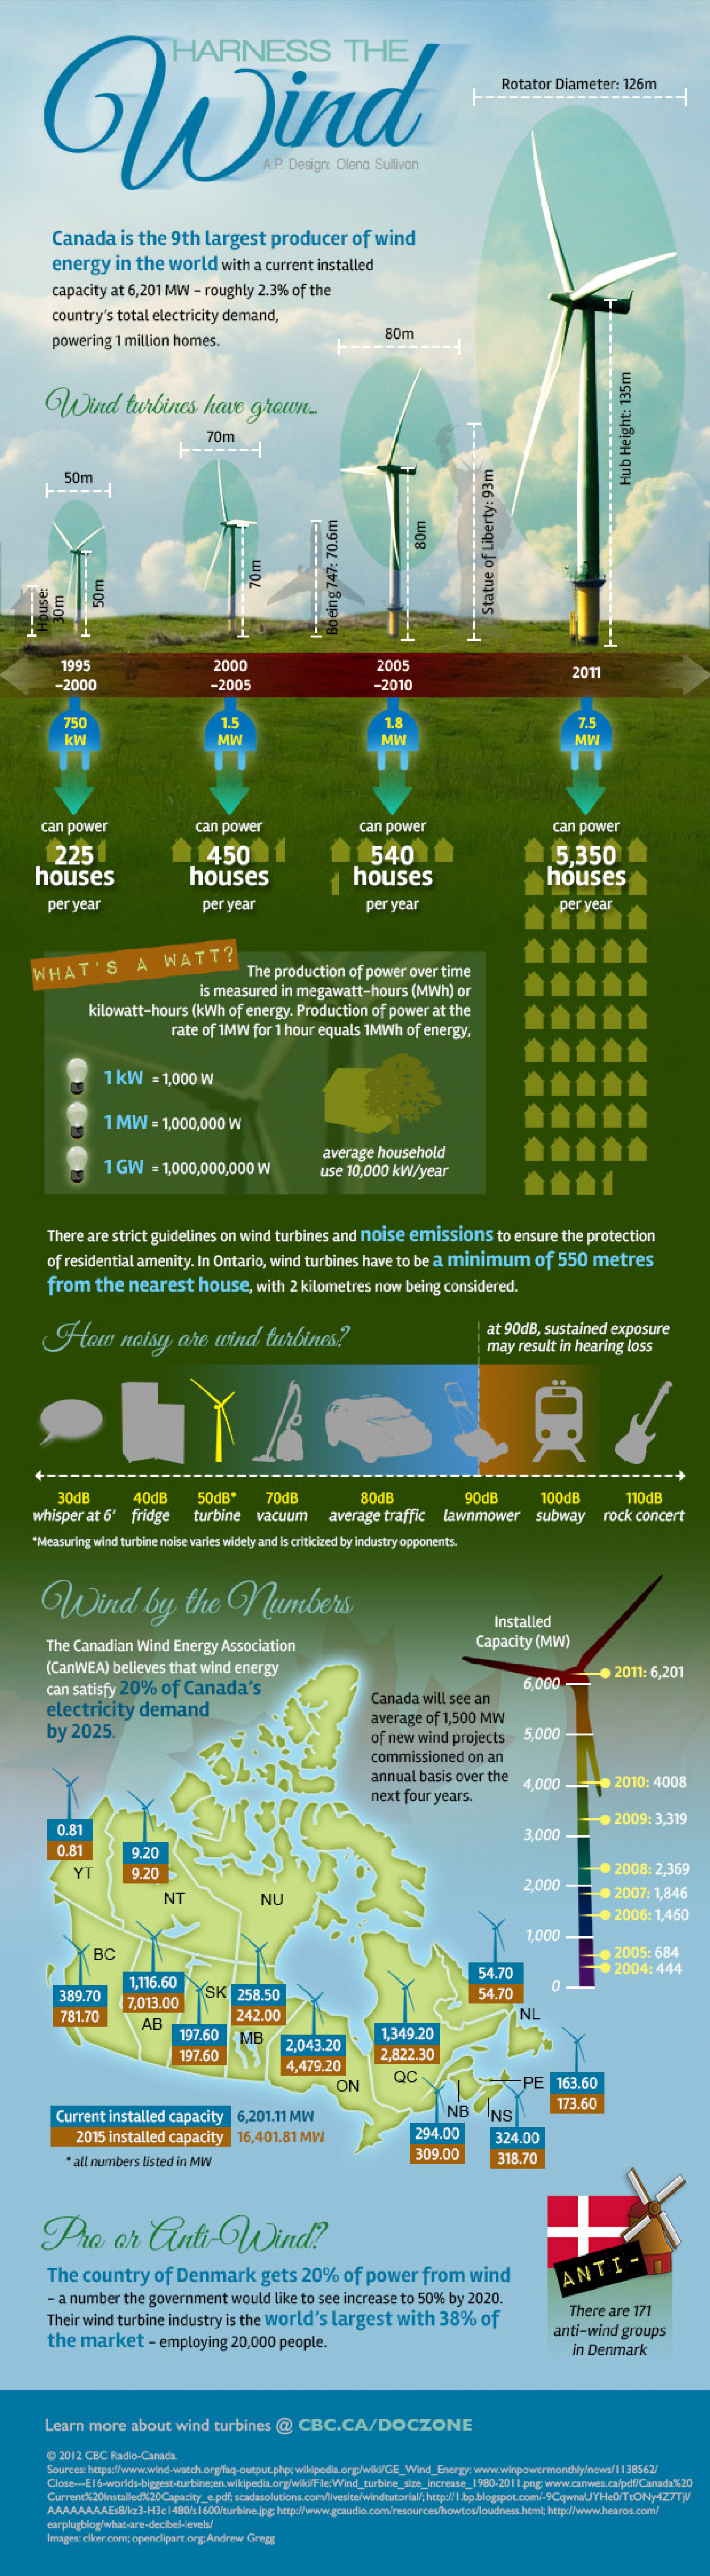 Harness the Wind Infographic